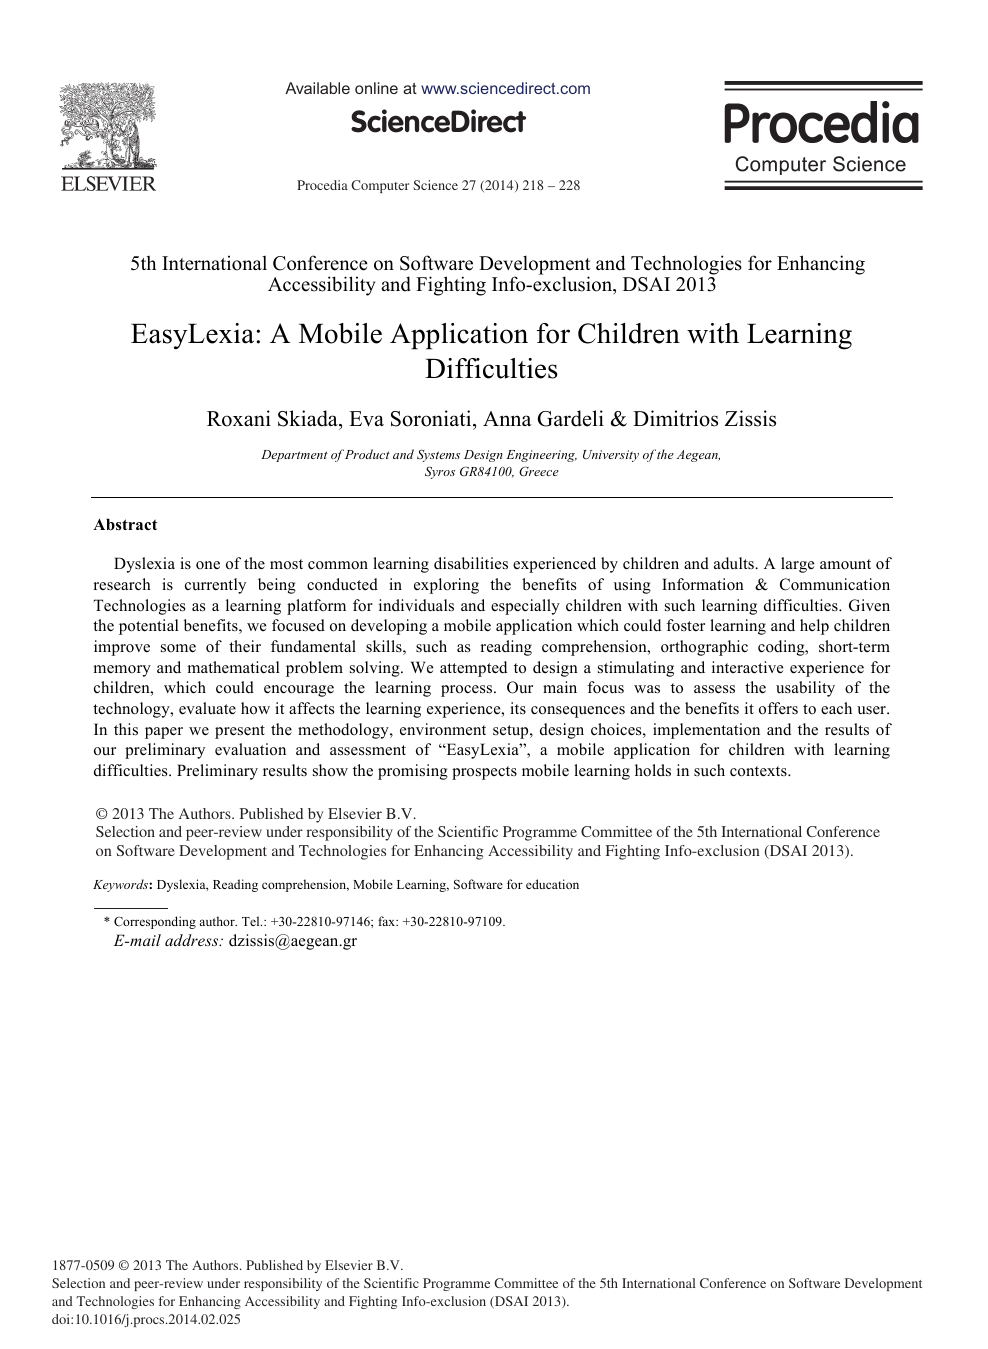 Easylexia A Mobile Application For Children With Learning Difficulties Topic Of Research Paper In Computer And Information Sciences Download Scholarly Article Pdf And Read For Free On Cyberleninka Open Science Hub